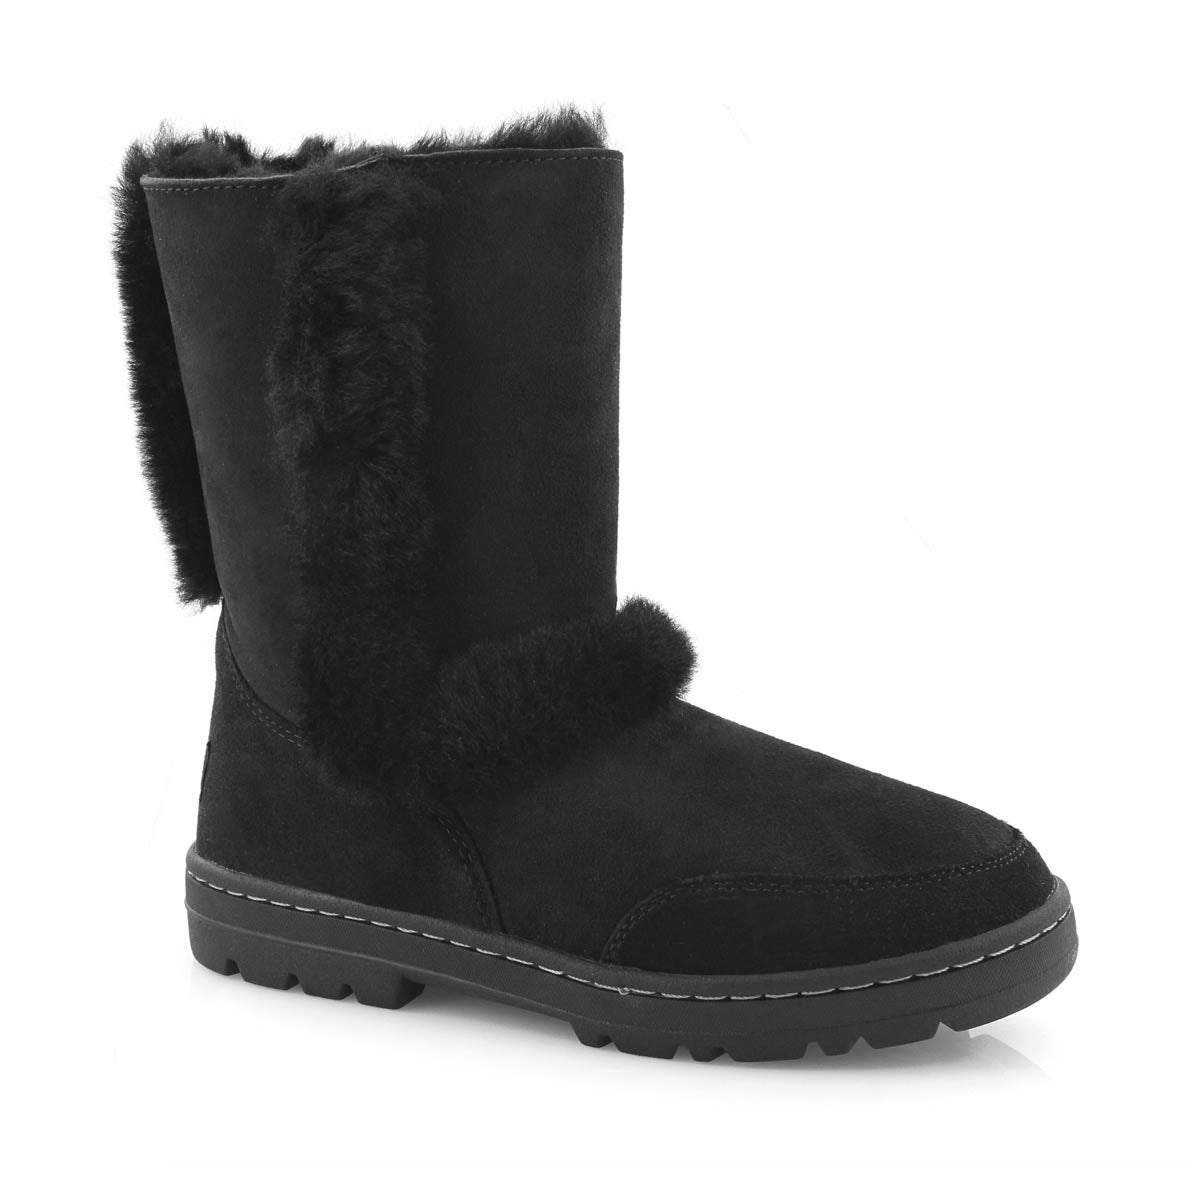 Lds Sundance Short II Revival blk boot